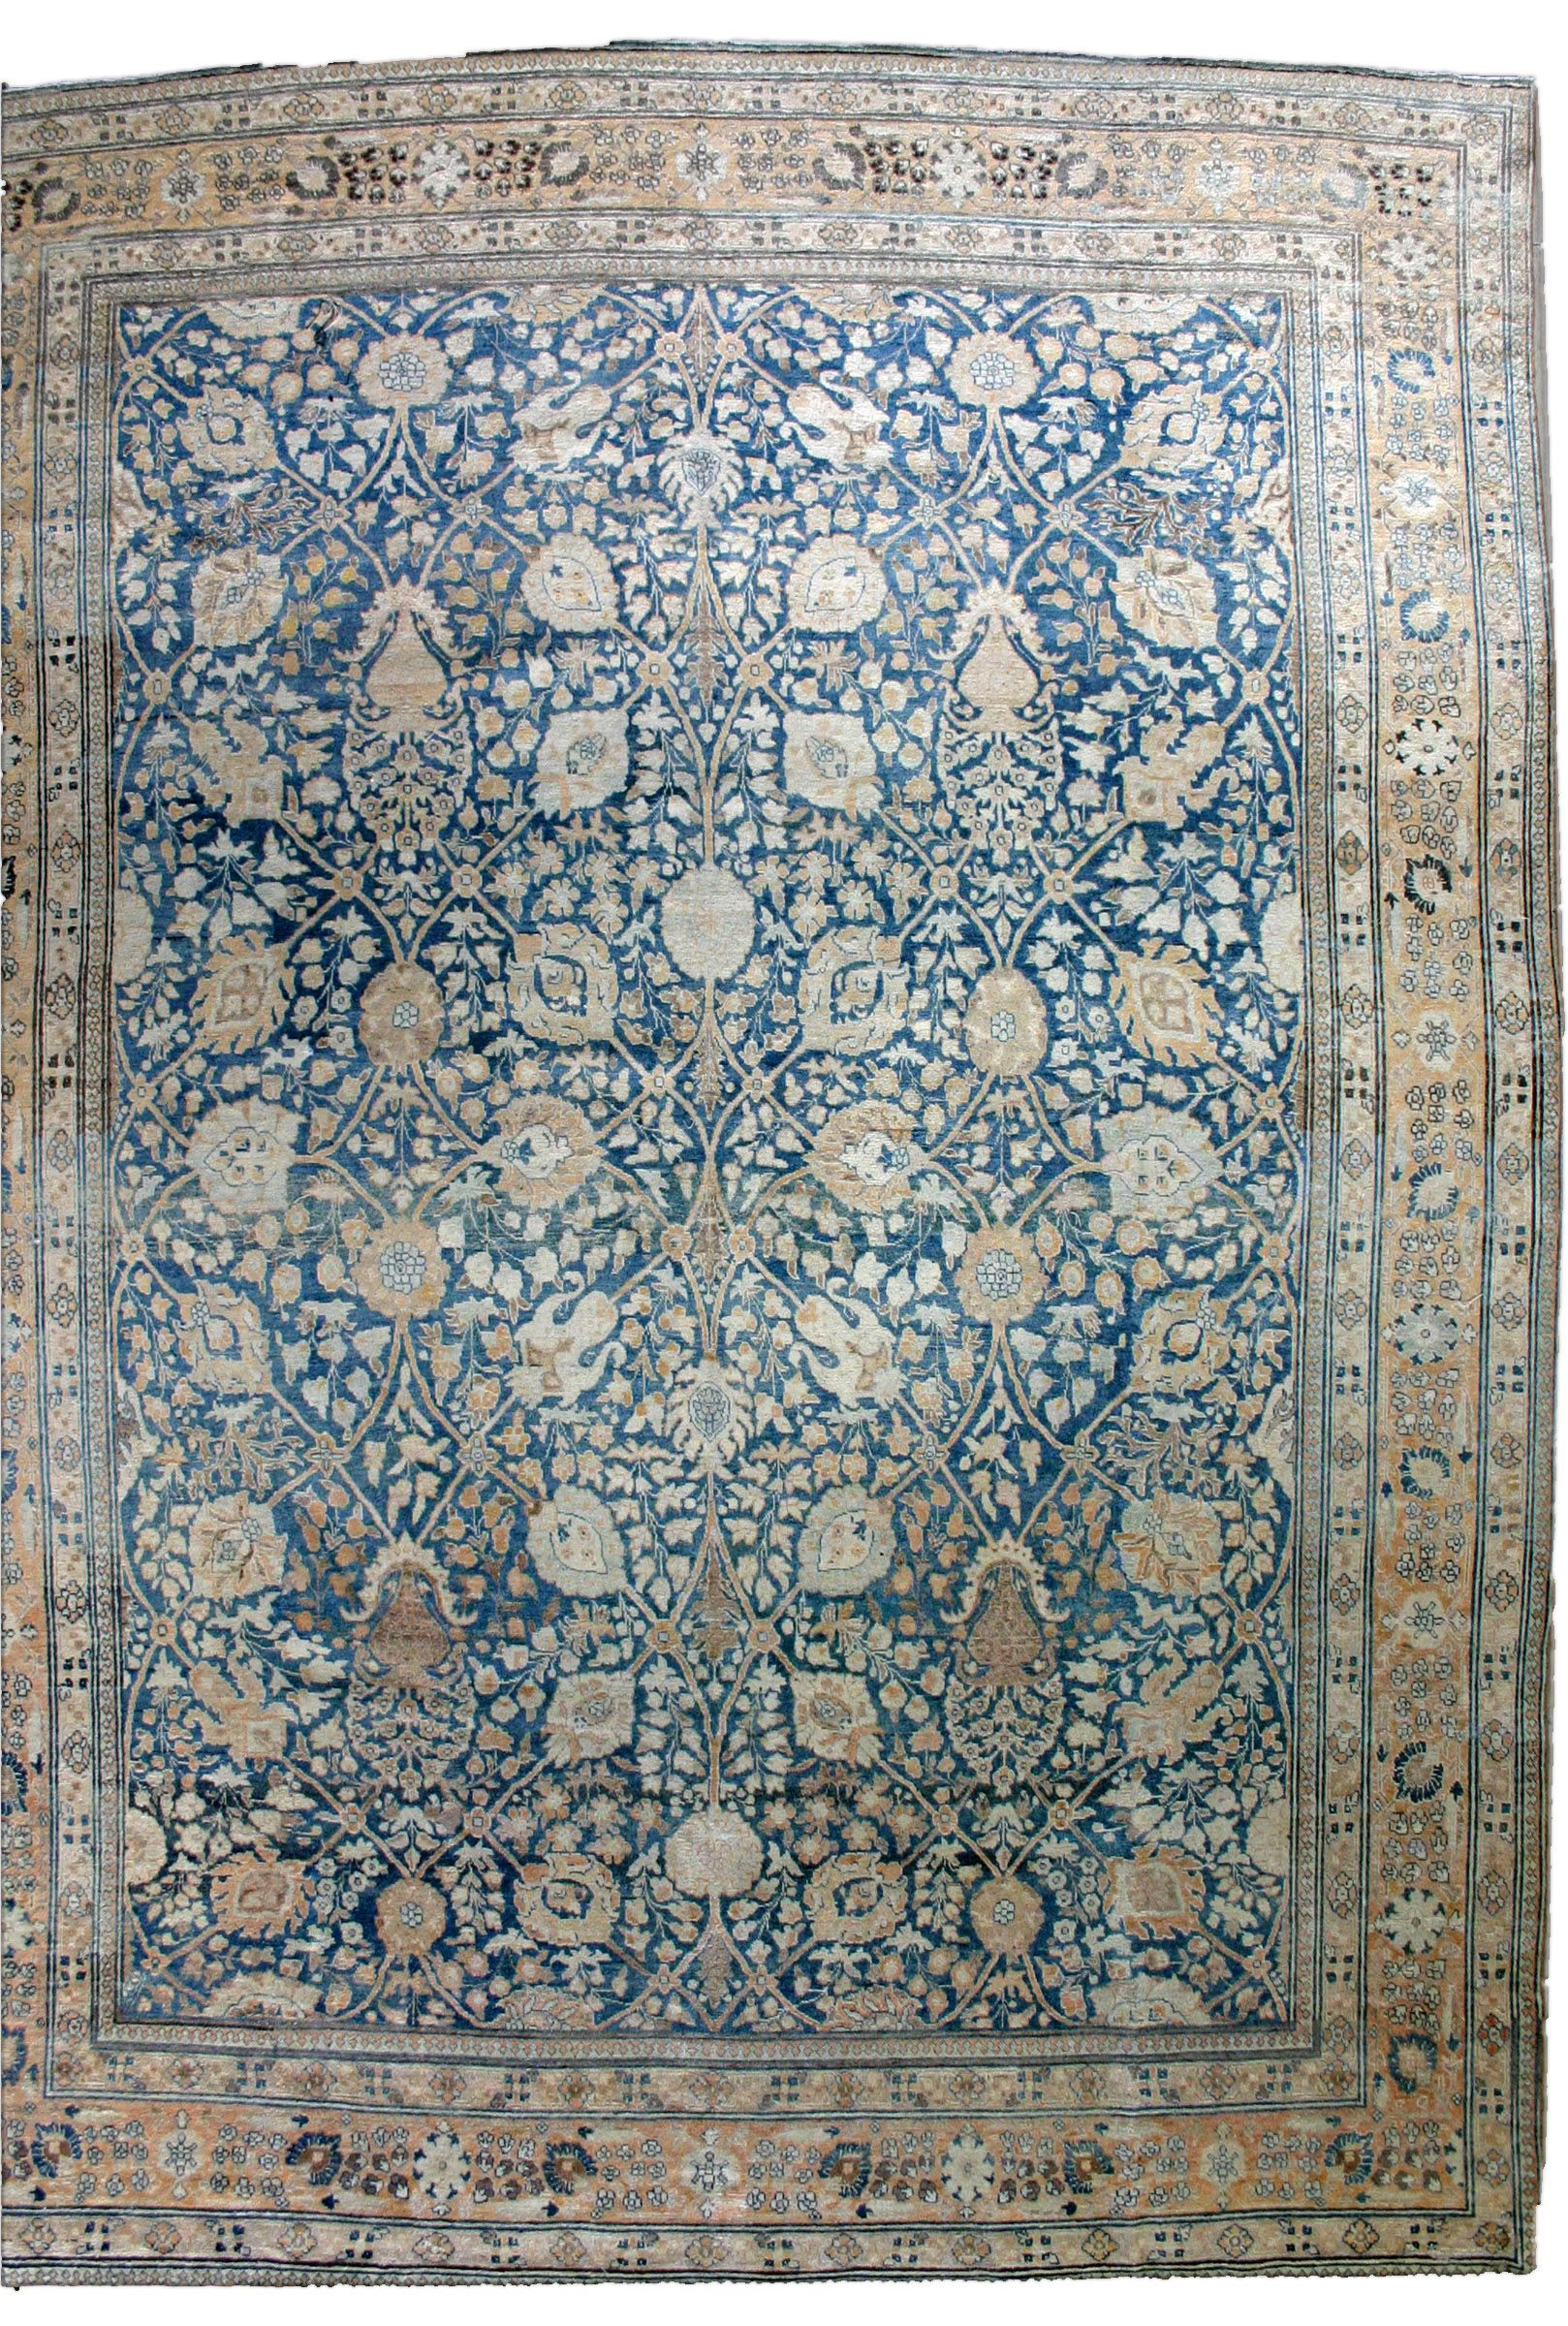 Blue Antique Persian Rug Move Your Mouse Over Image Or